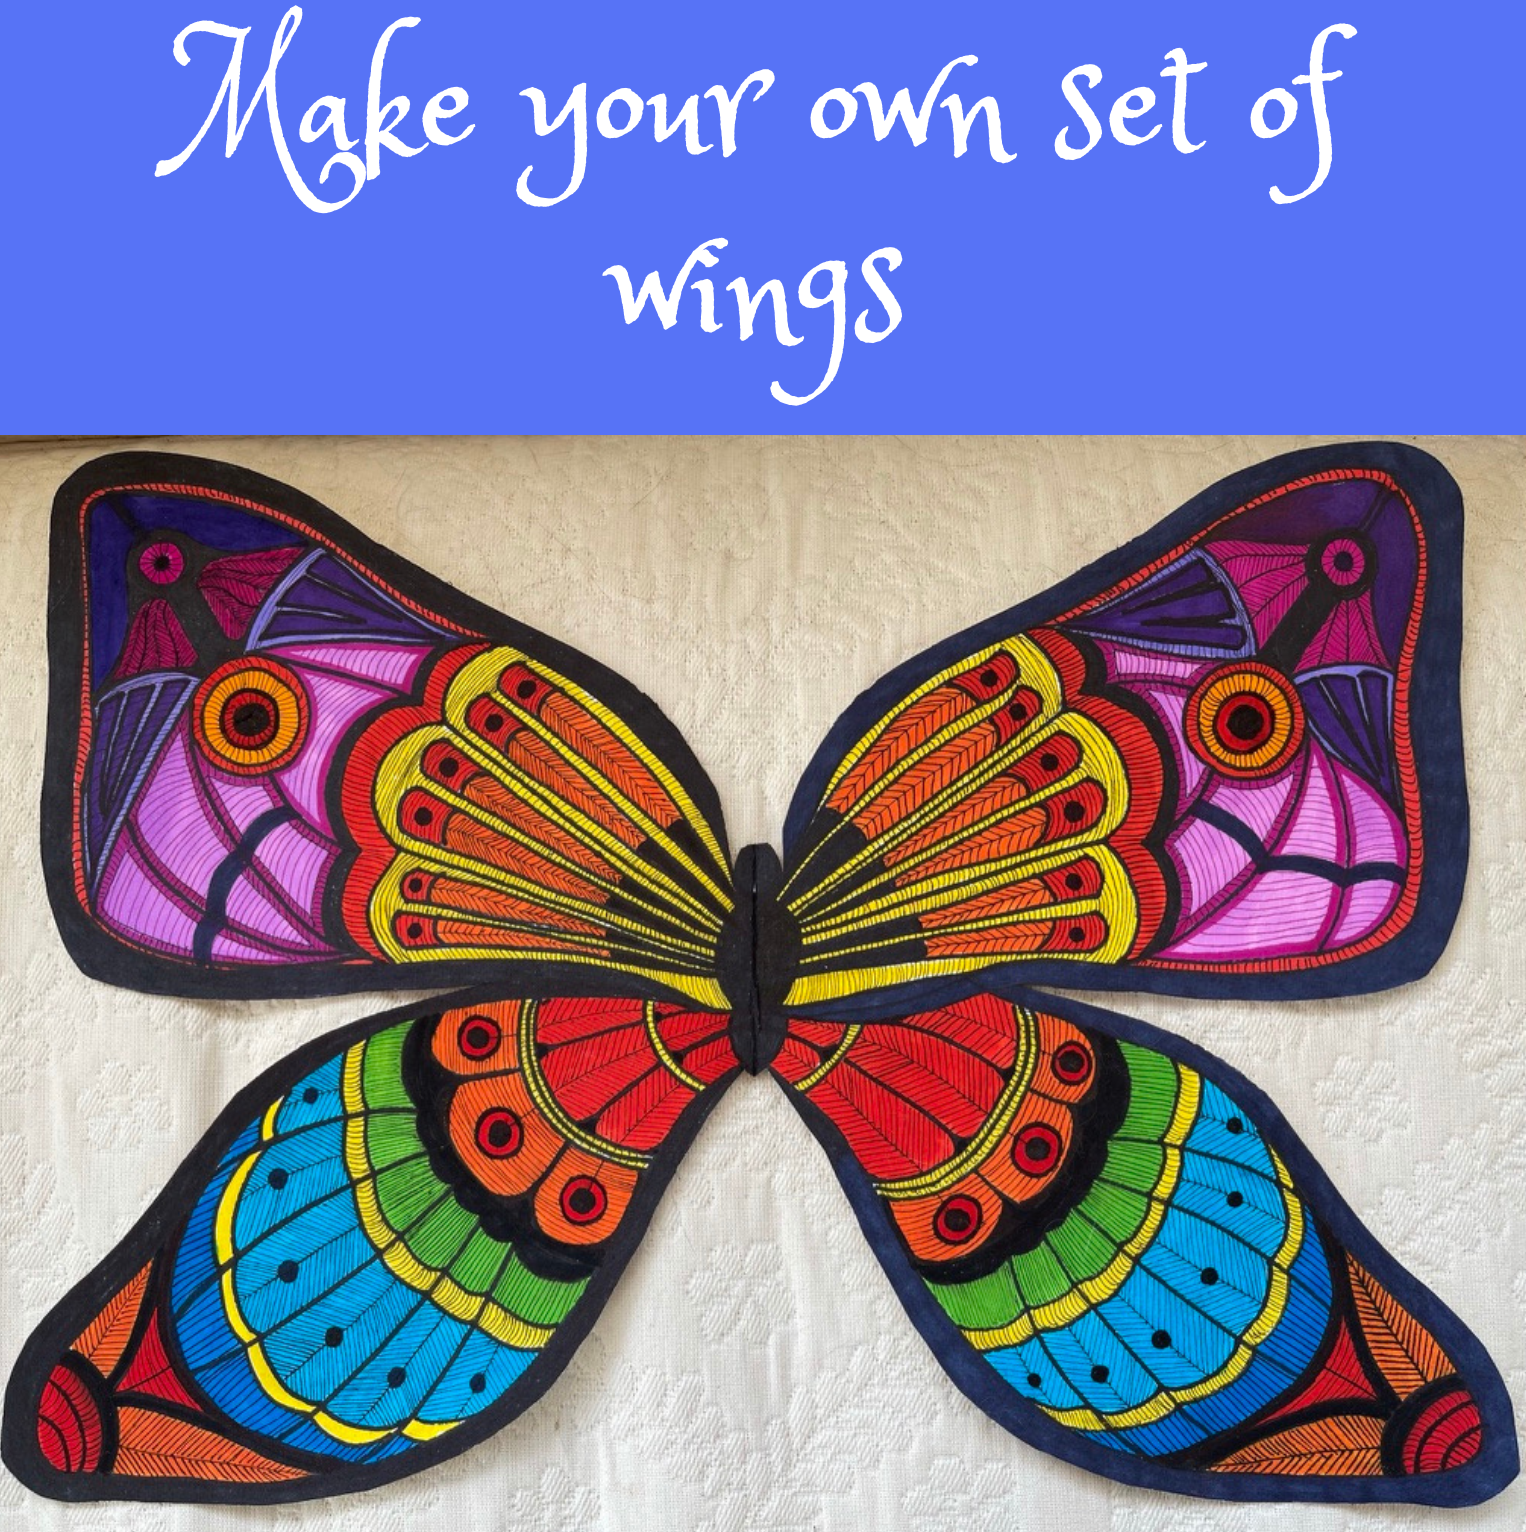 Design your wings with Julie Garvin Riggs